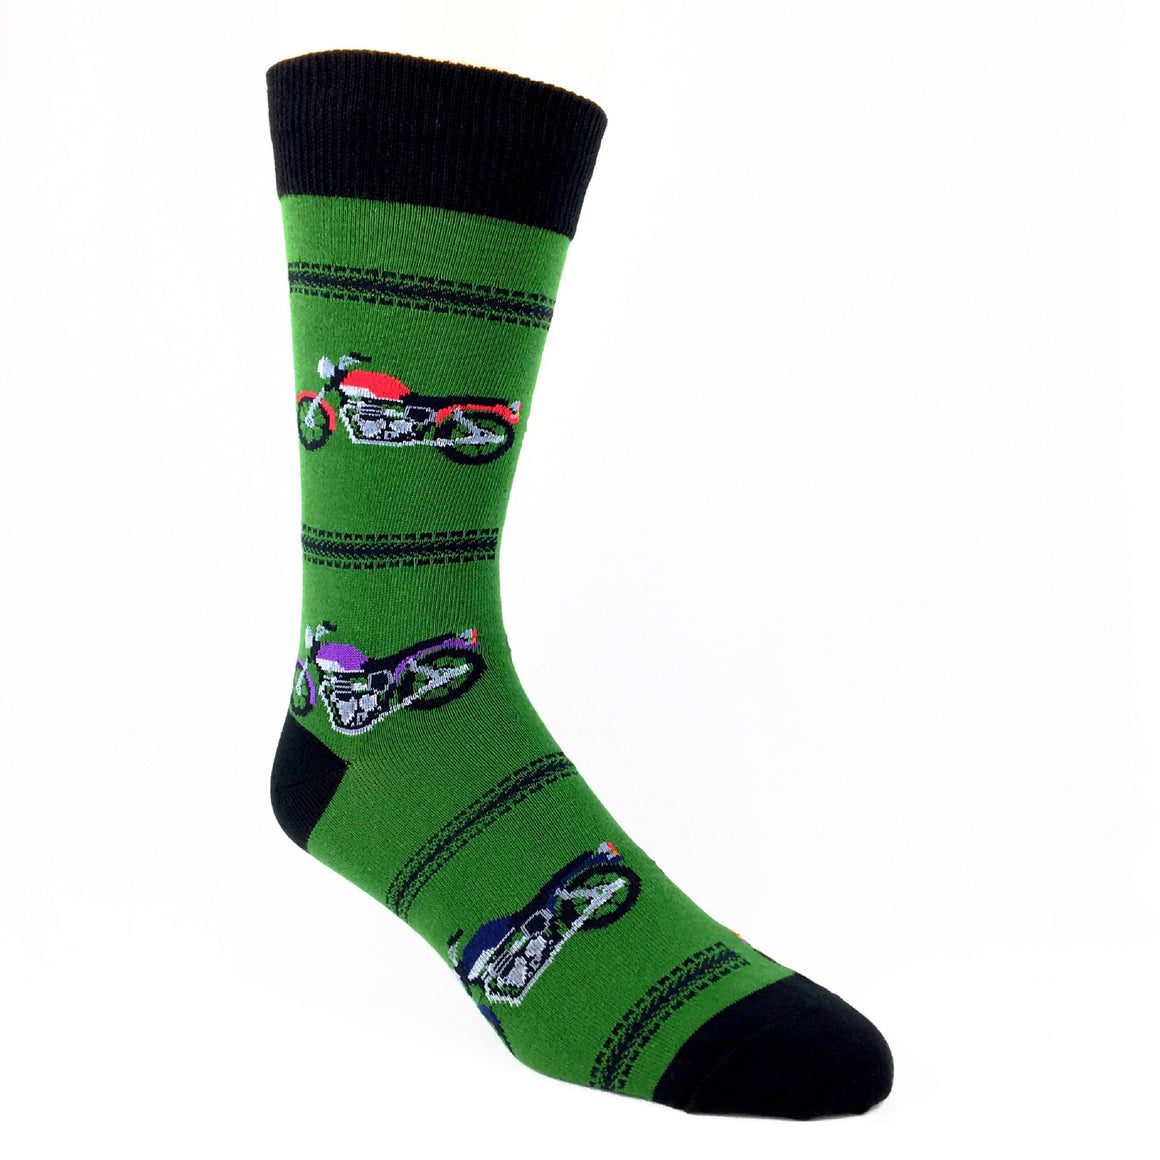 Motorcycles Socks - Green - The Sock Spot